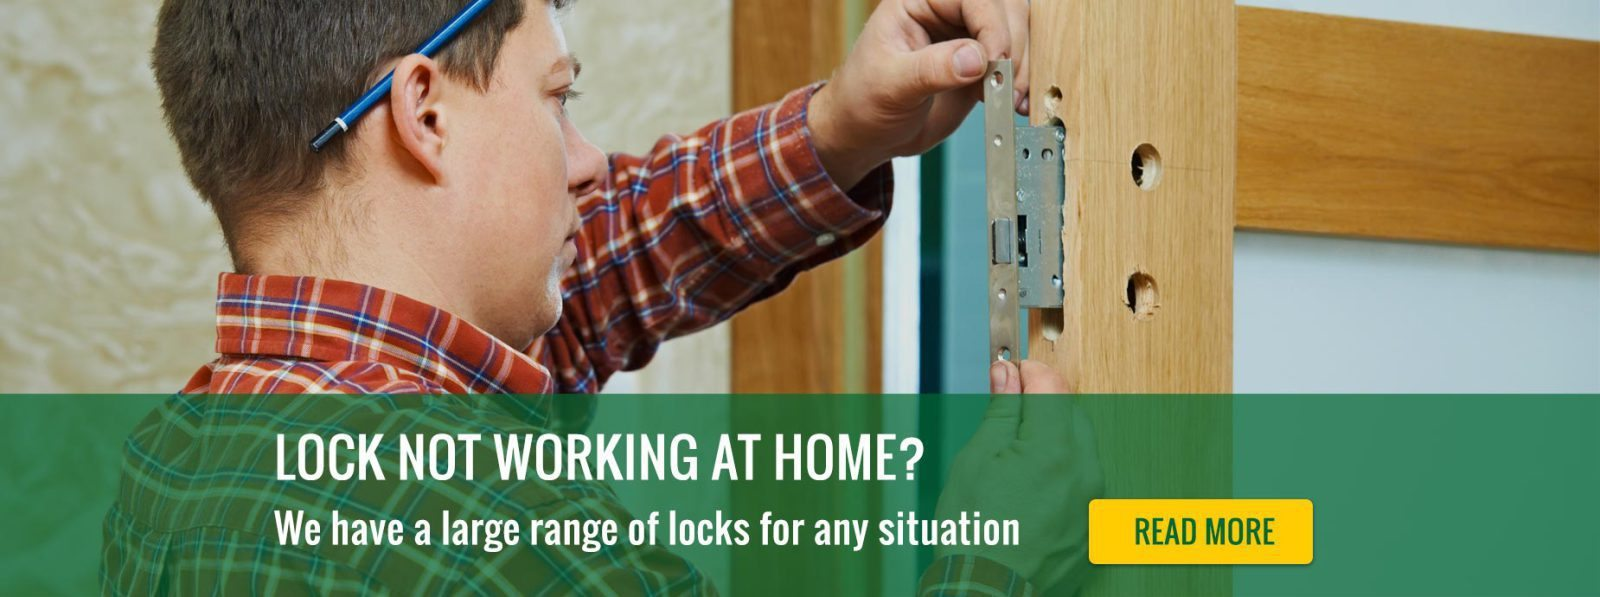 Locks not working at home?